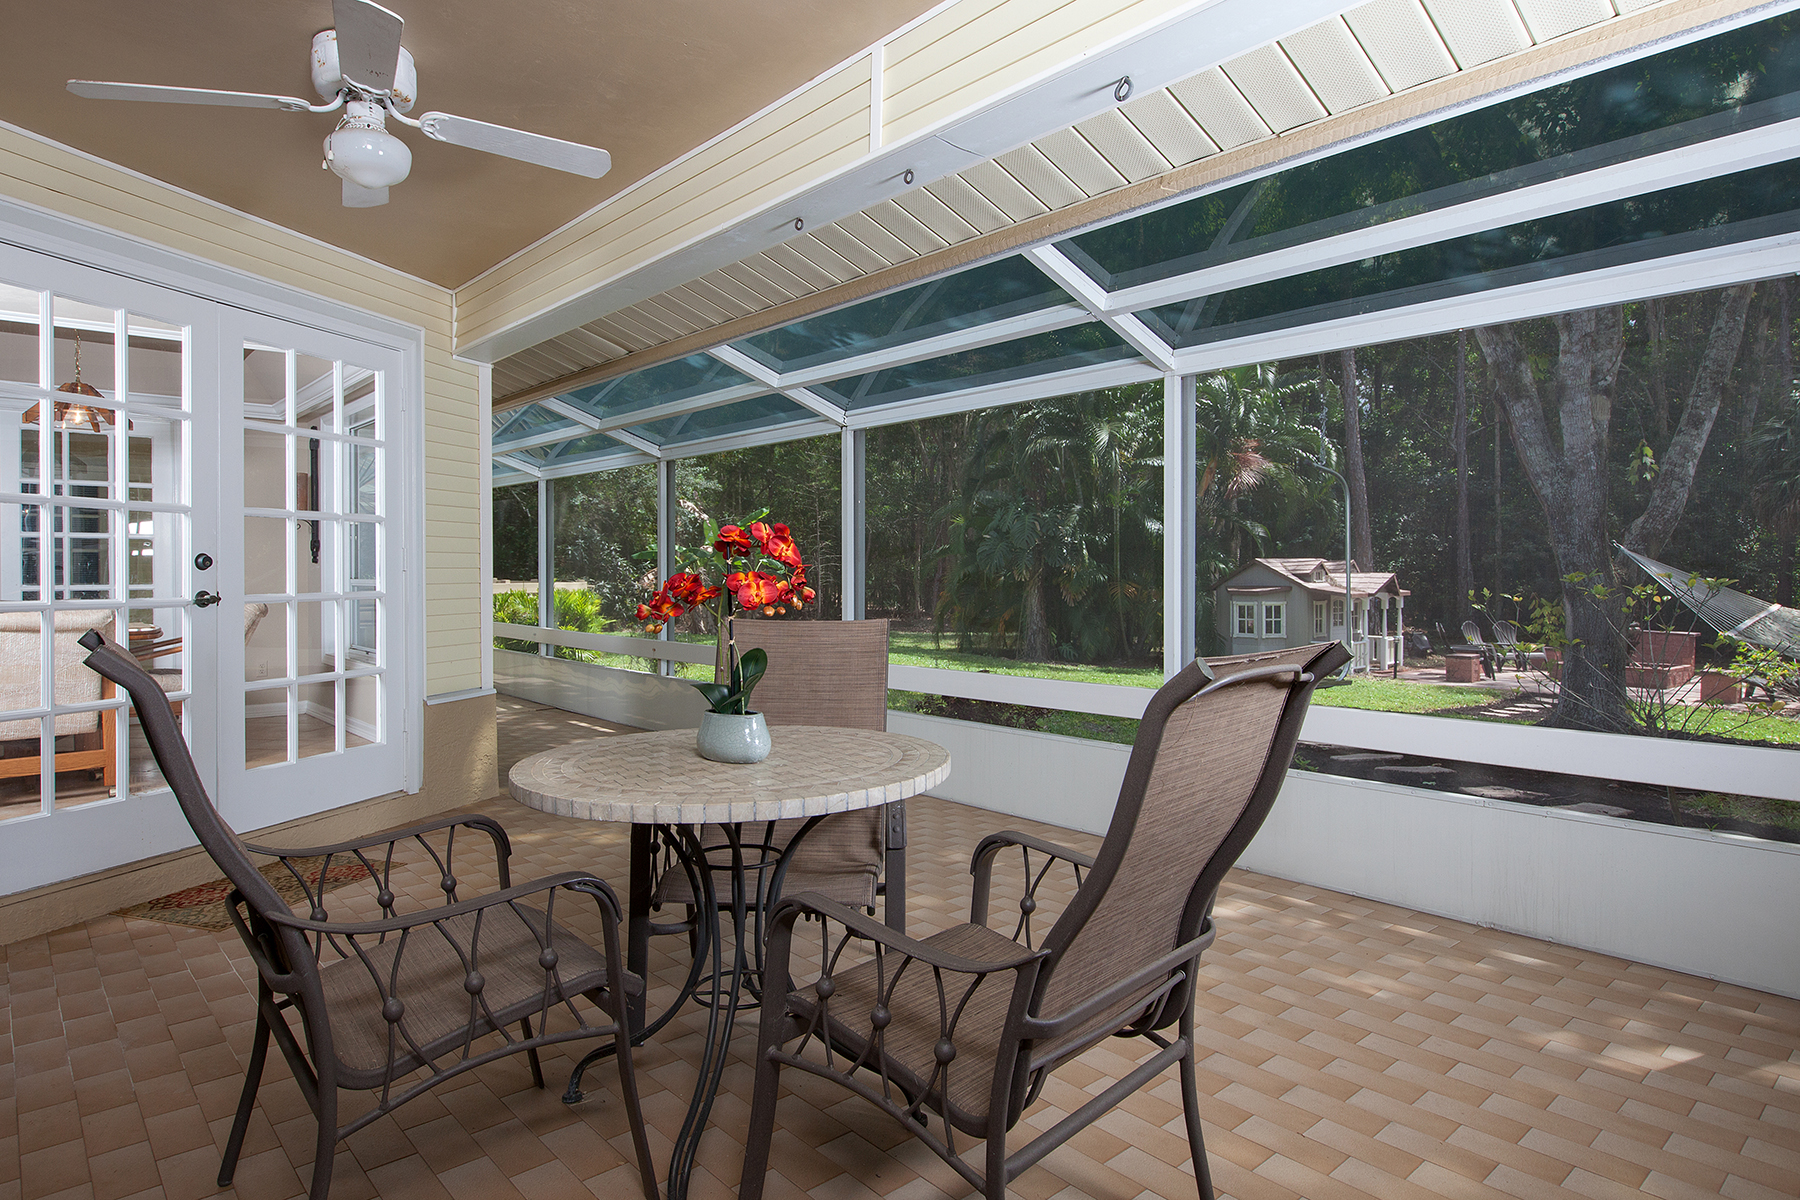 Additional photo for property listing at LIVINGSTON WOODS 6960  Sable Ridge Ln,  Naples, Florida 34109 United States